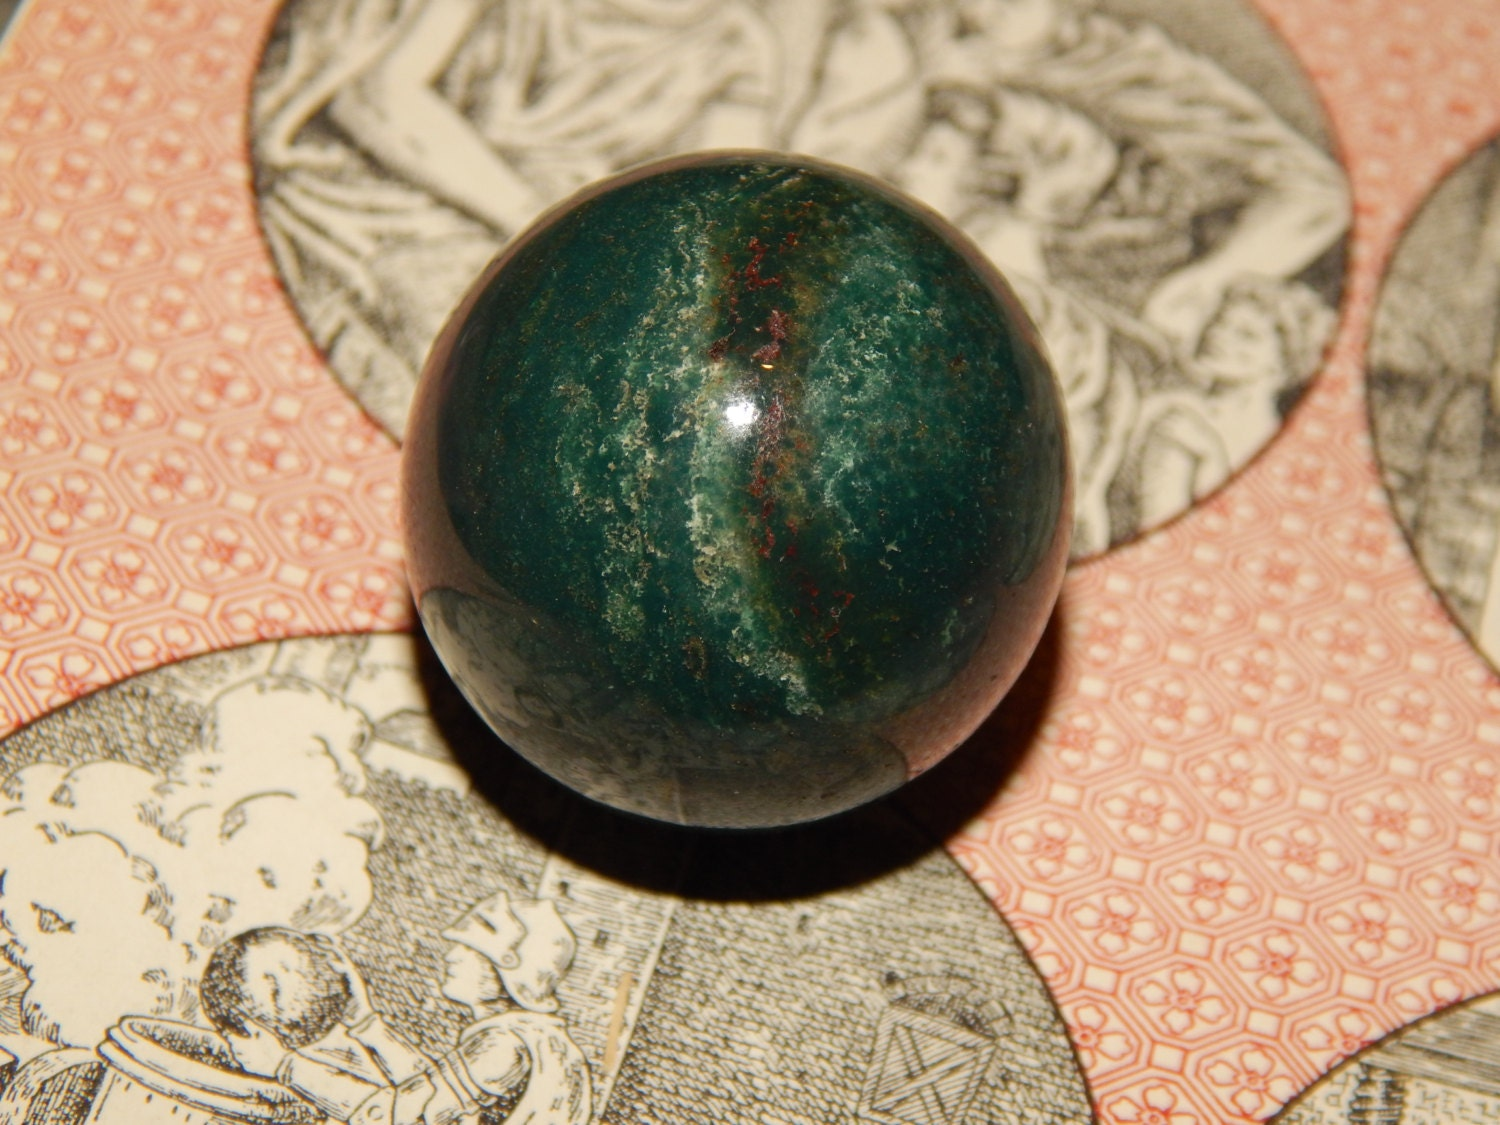 genuine bloodstone orb genuine bloodstone gemstone sphere